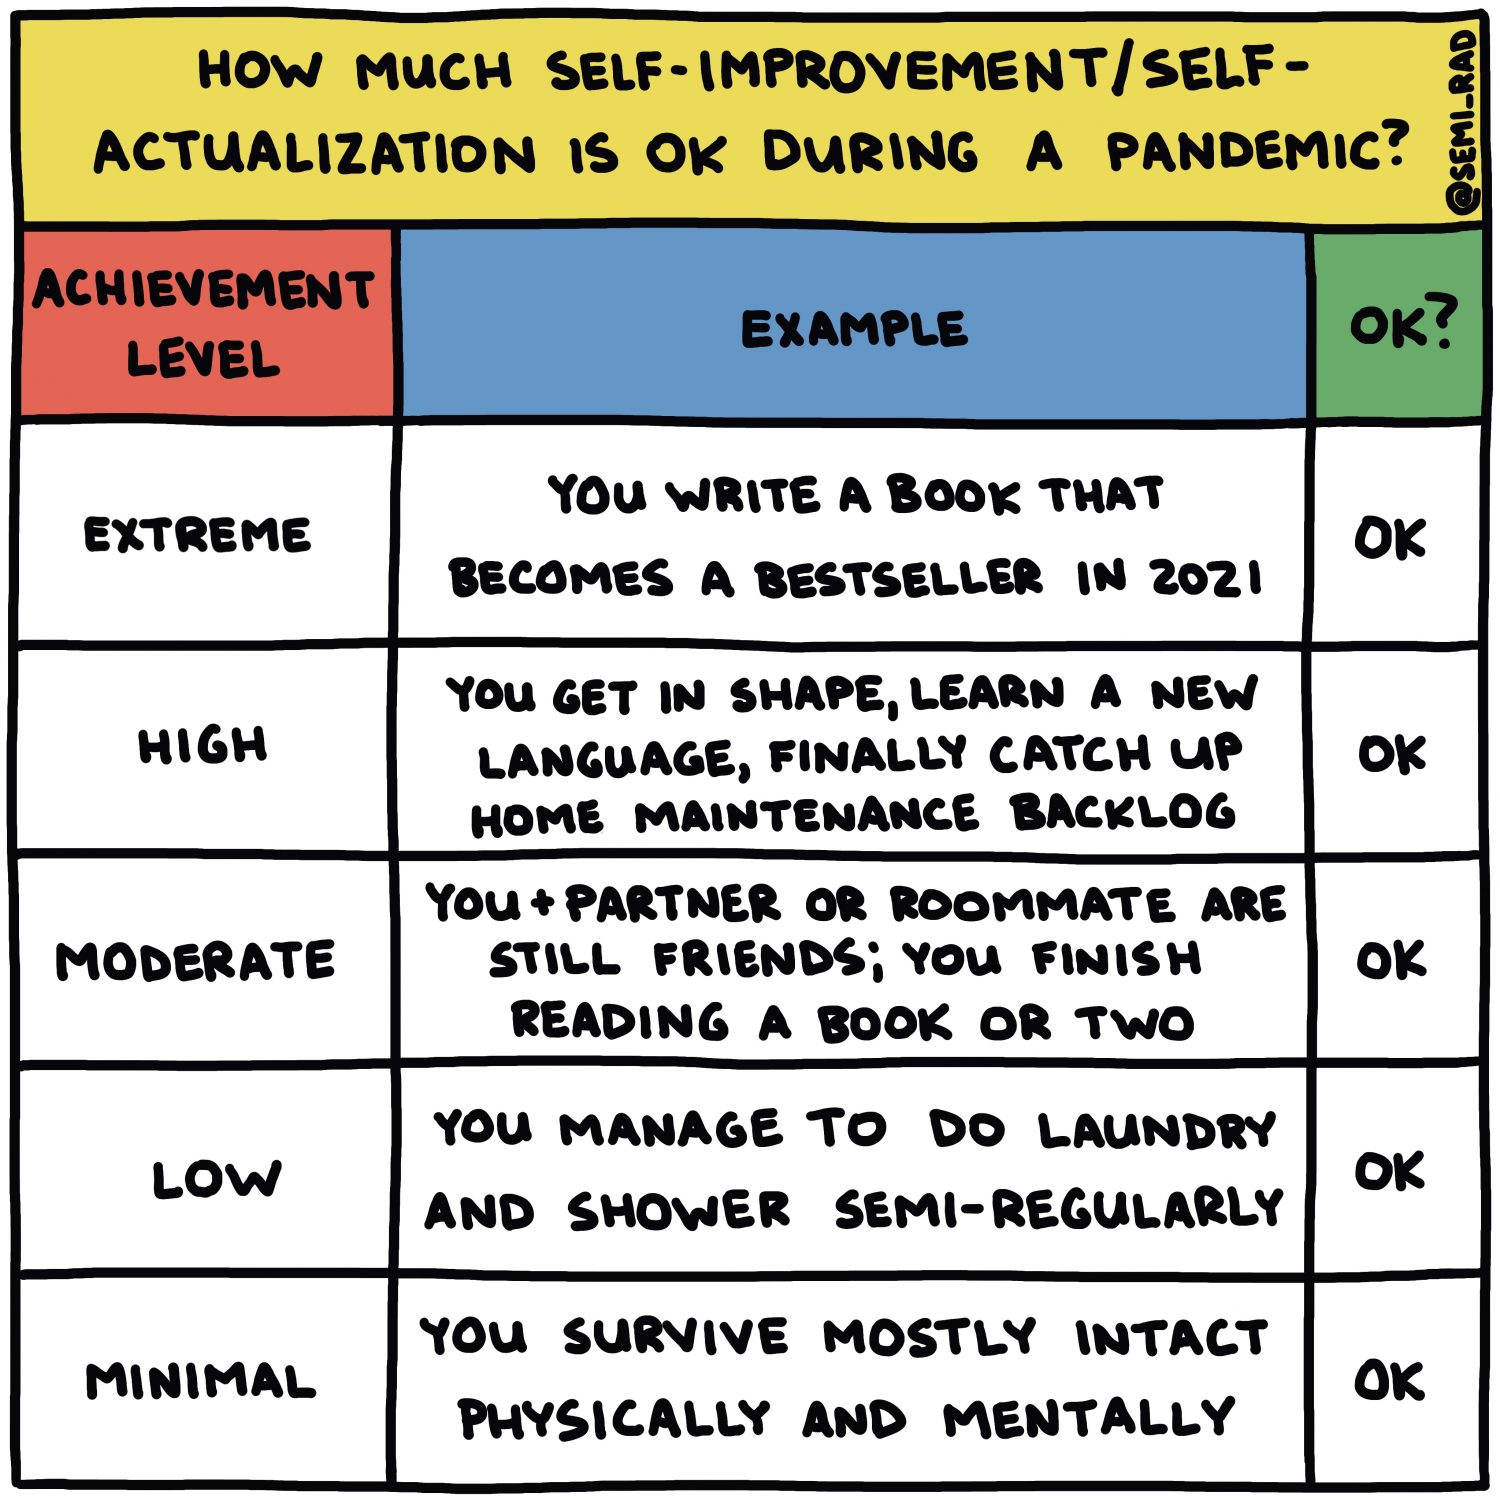 How Much Self-Improvement/Self-Actualization Is OK During A Pandemic?